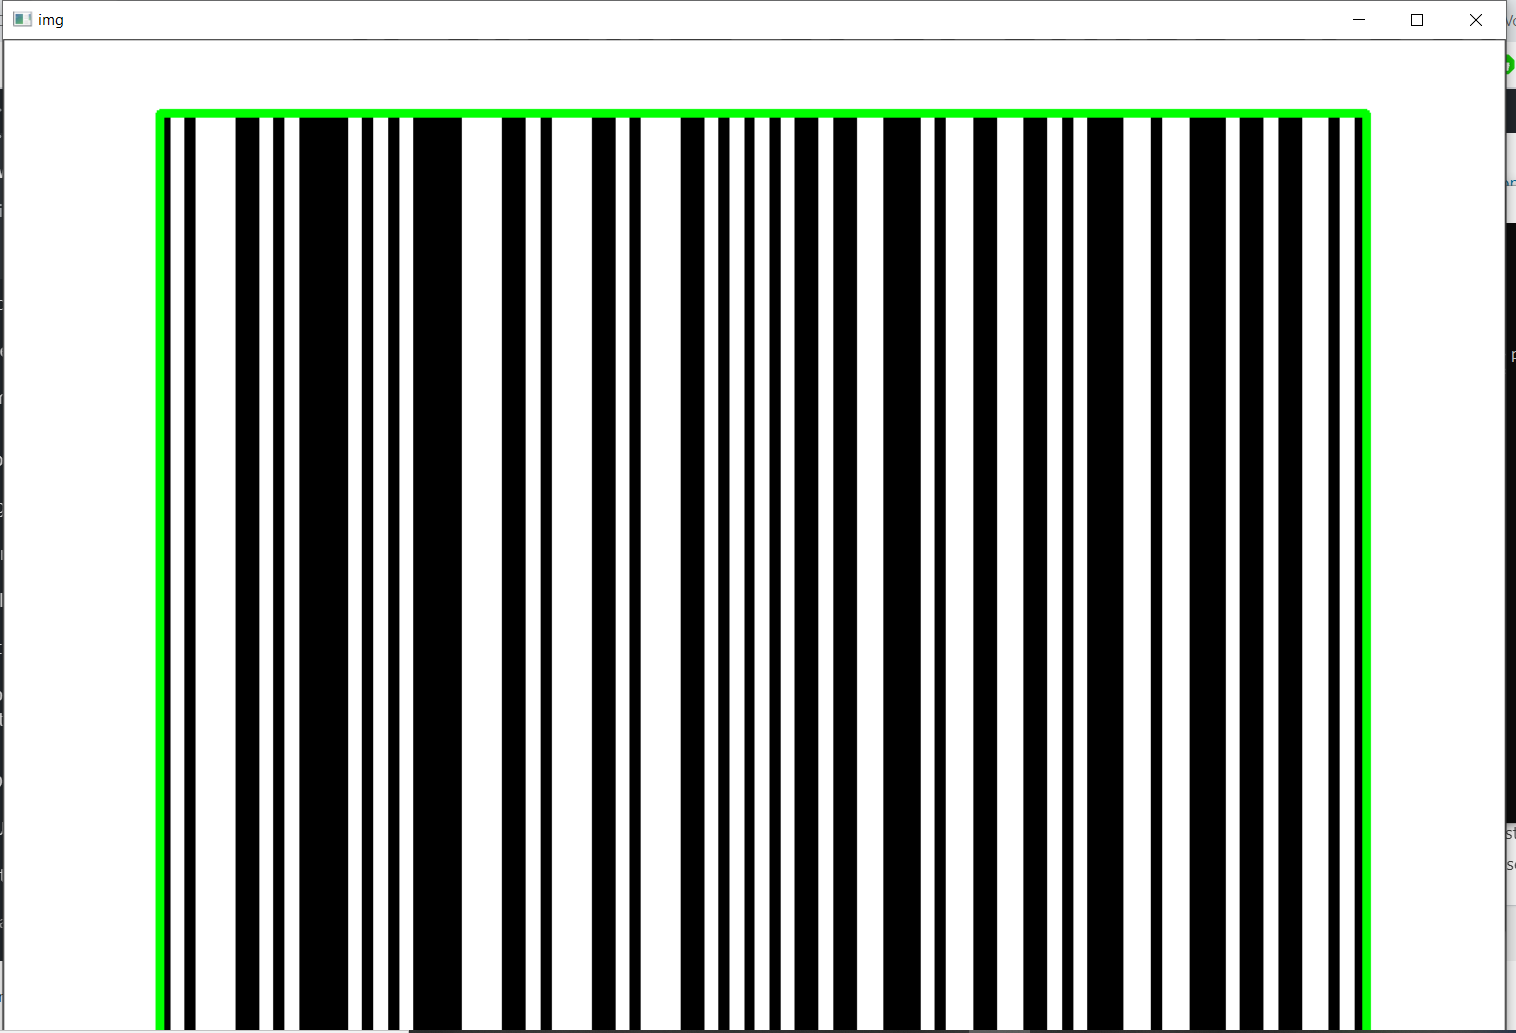 Python 3 Script to Make a Barcode Reader Using pyzbar and python-opencv library Full Project For Beginners